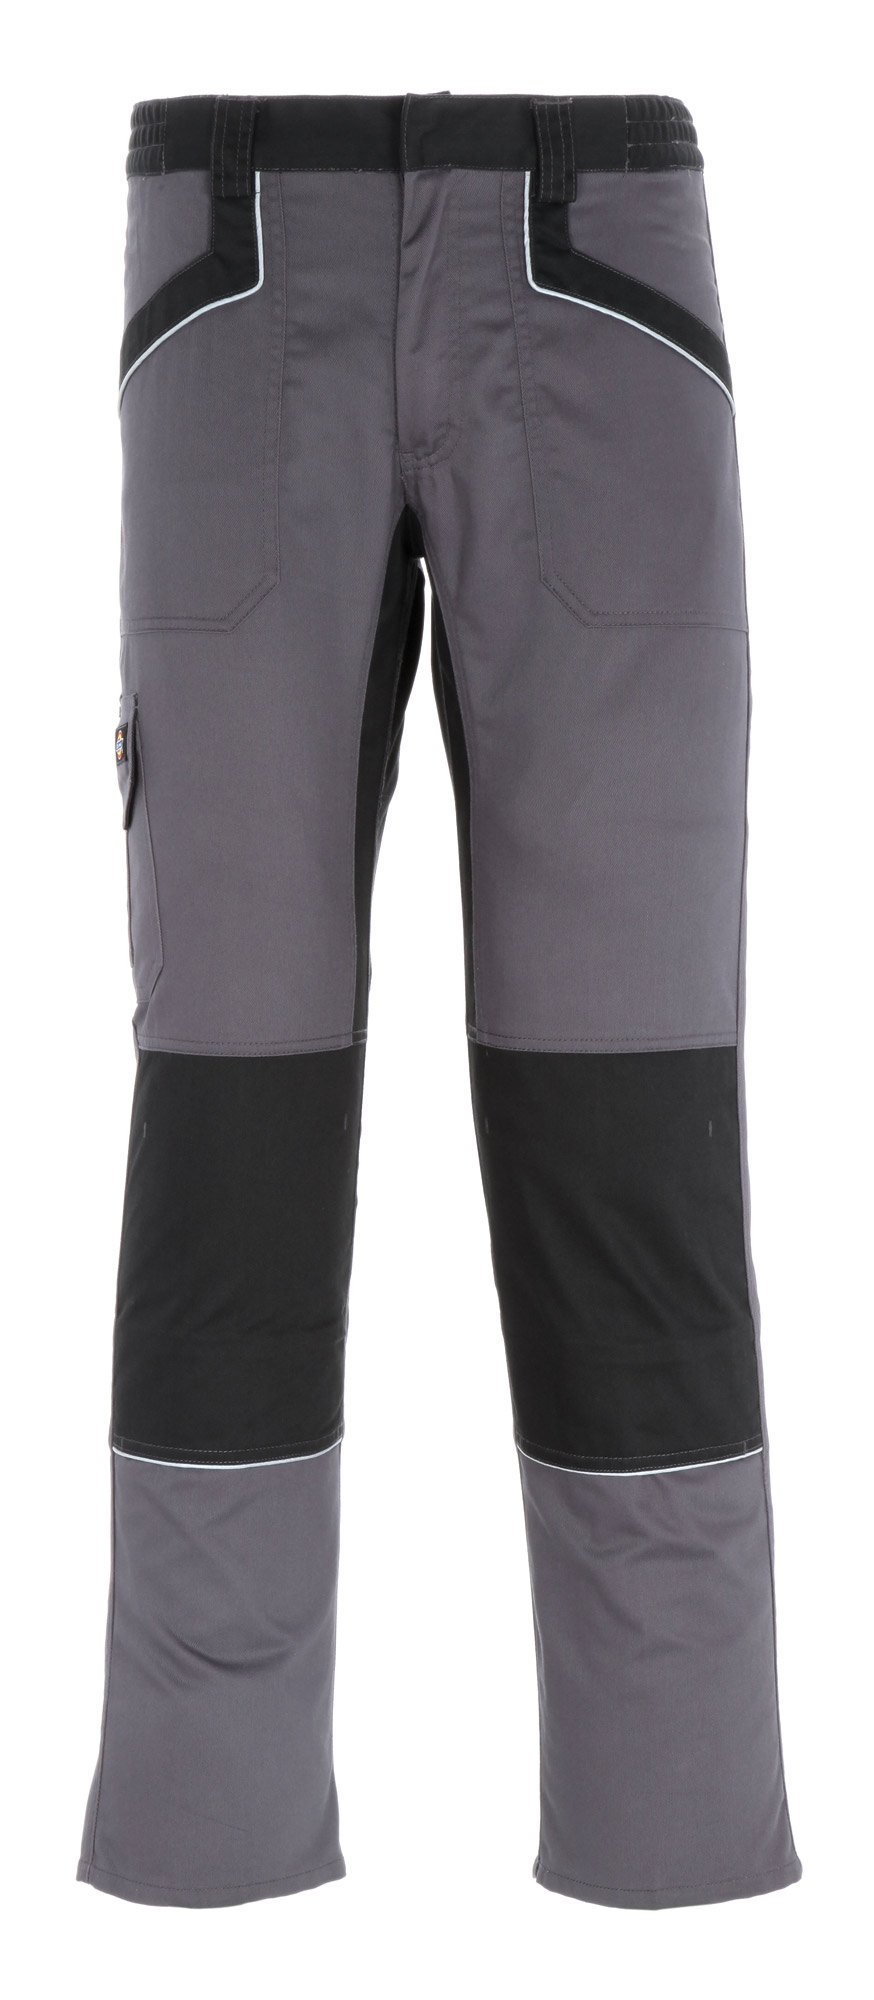 IND260 Trousers Grey/Black 44